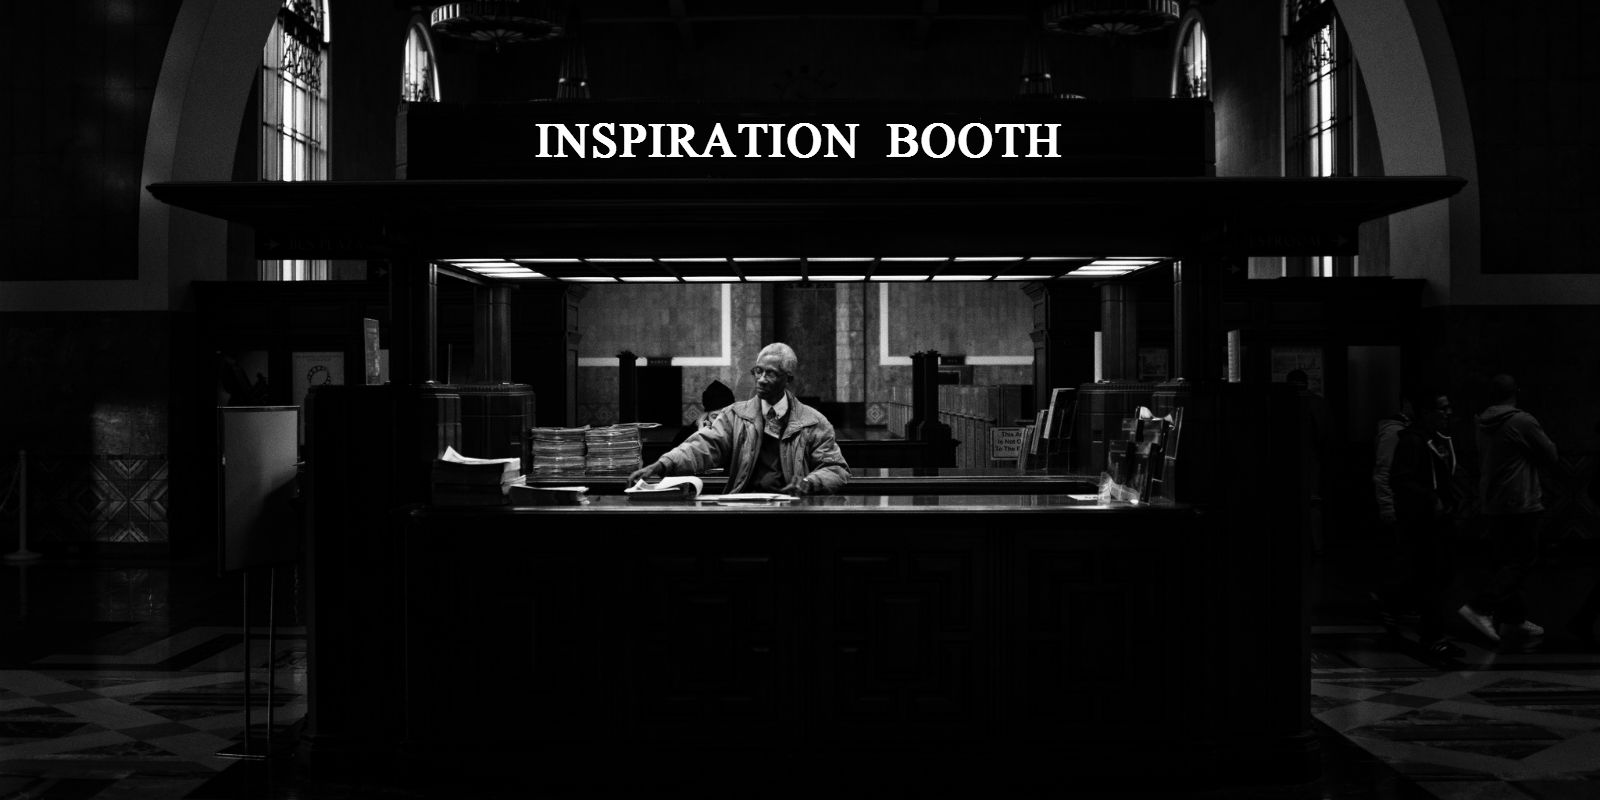 InspirationBooth